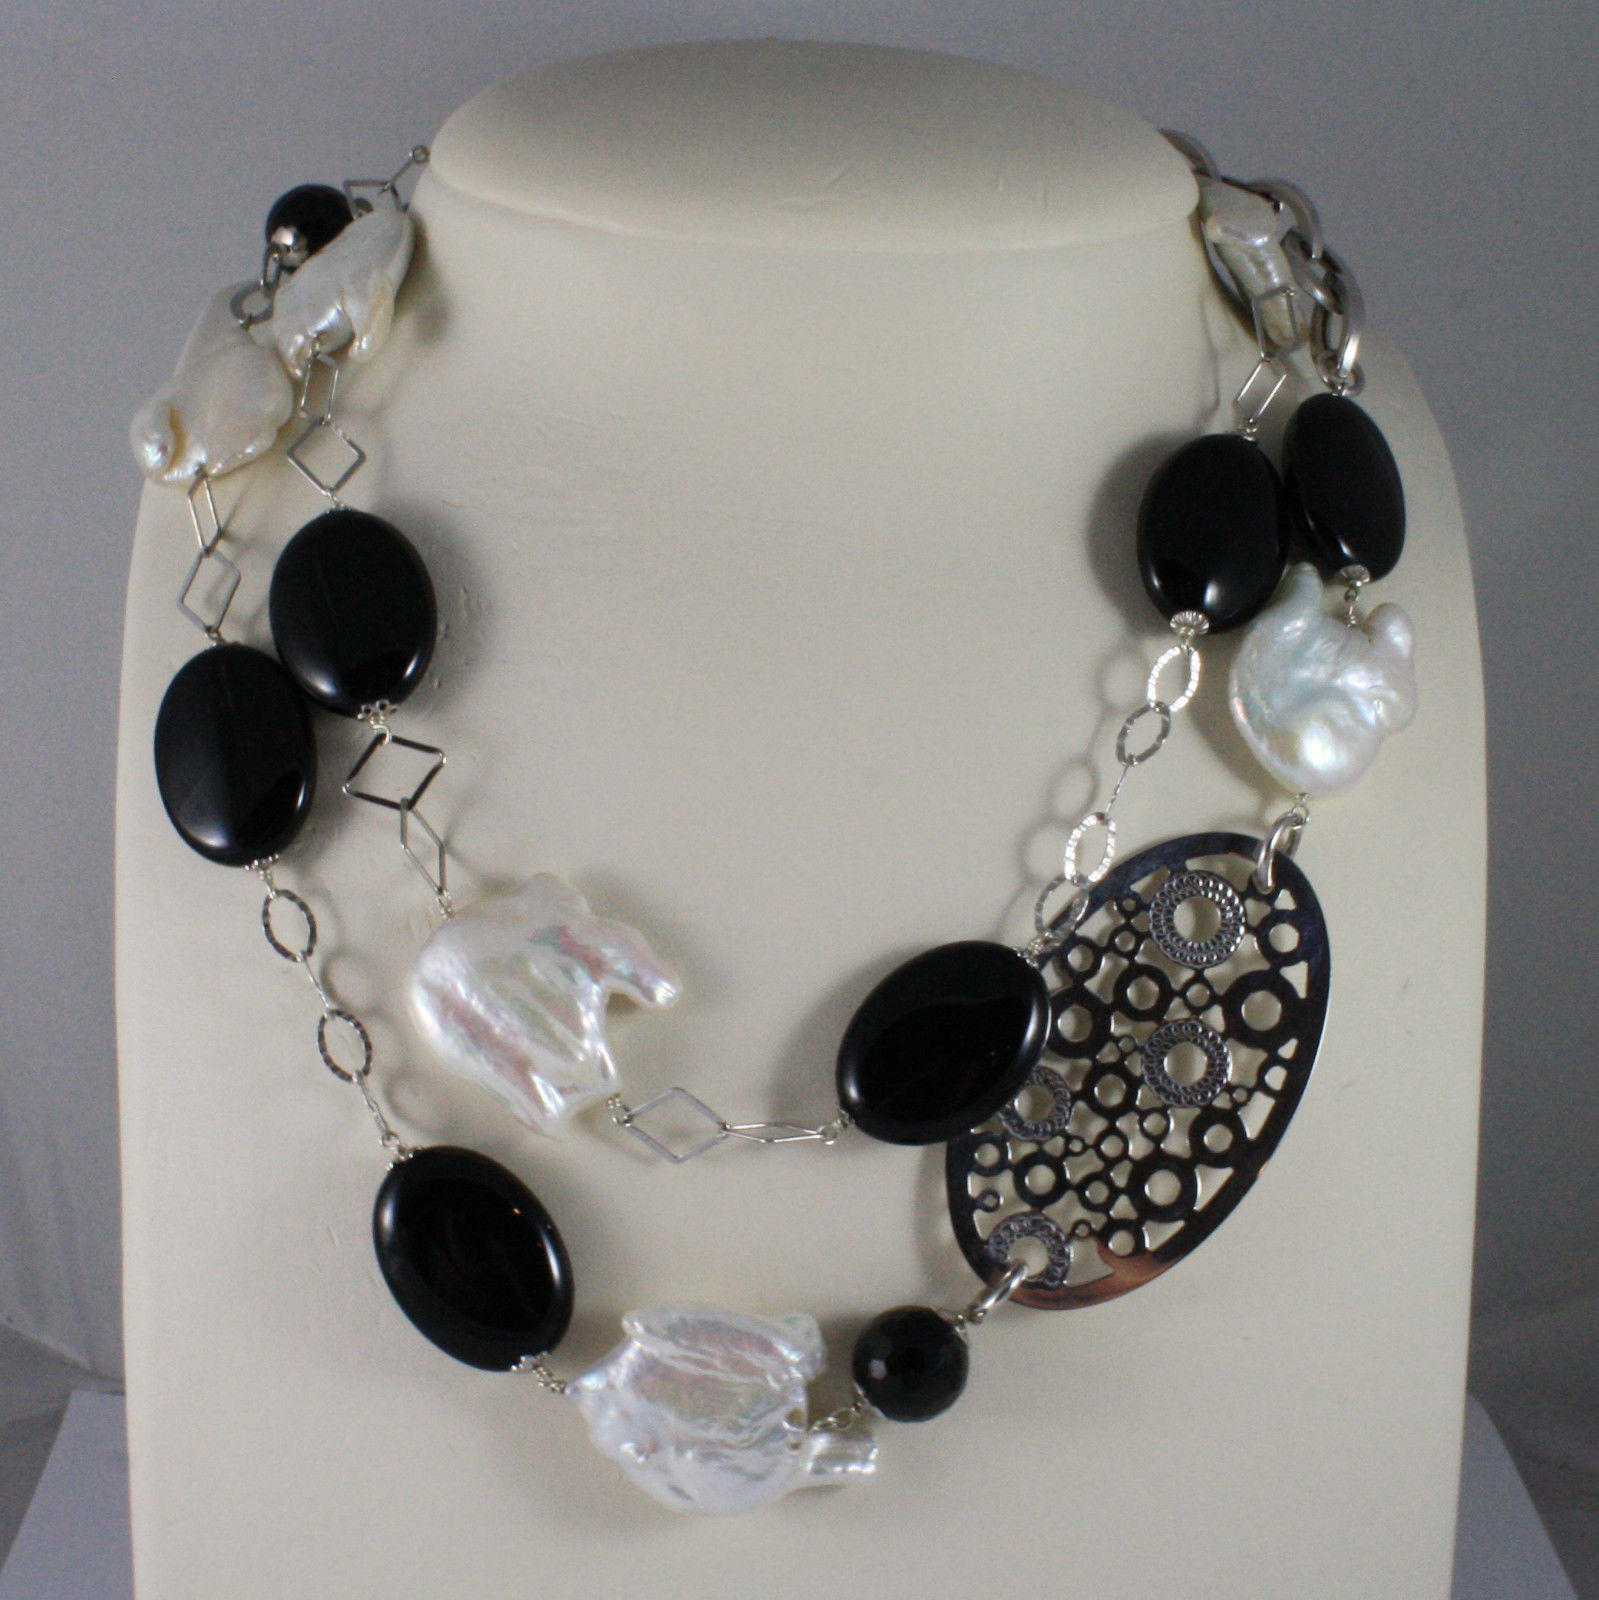 .925 SILVER RHODIUM NECKLACE WITH BLACK ONYX, BAROQUE WHITE PEARLS AND OVAL